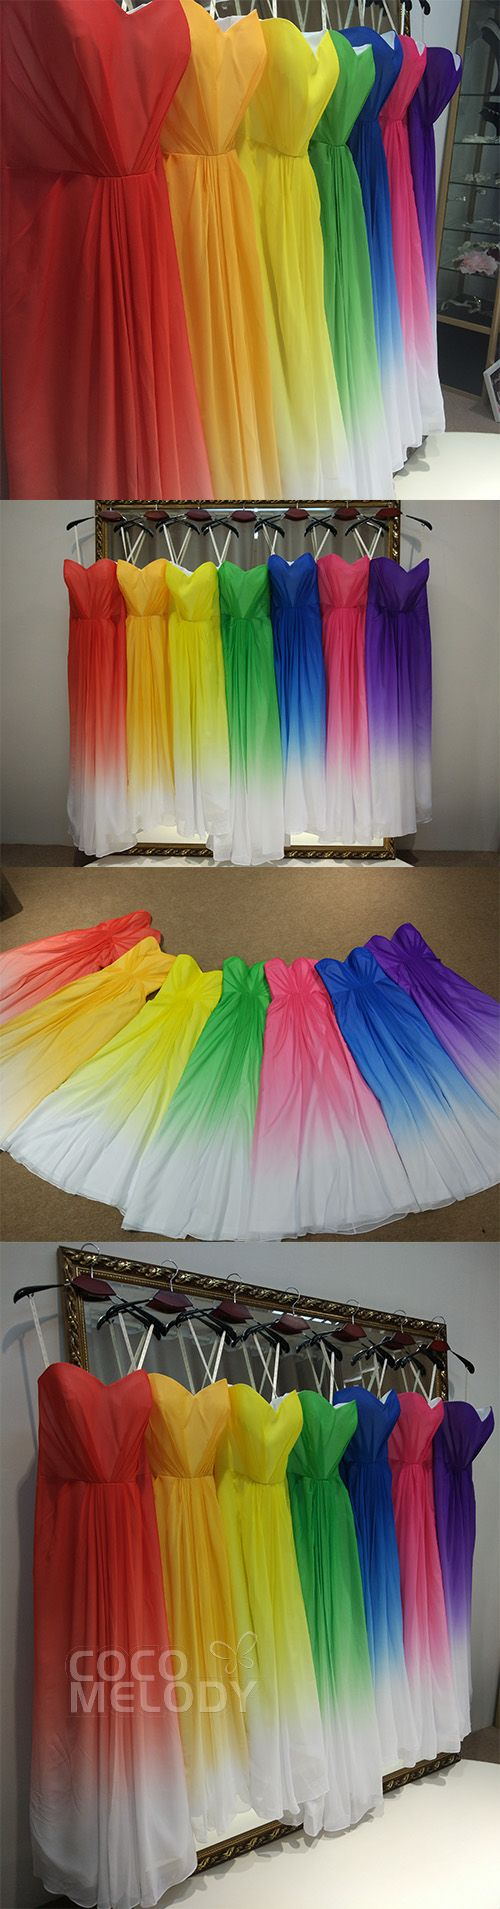 25 best ideas about rainbow wedding dress on pinterest for Rainbow wedding dress say yes to the dress